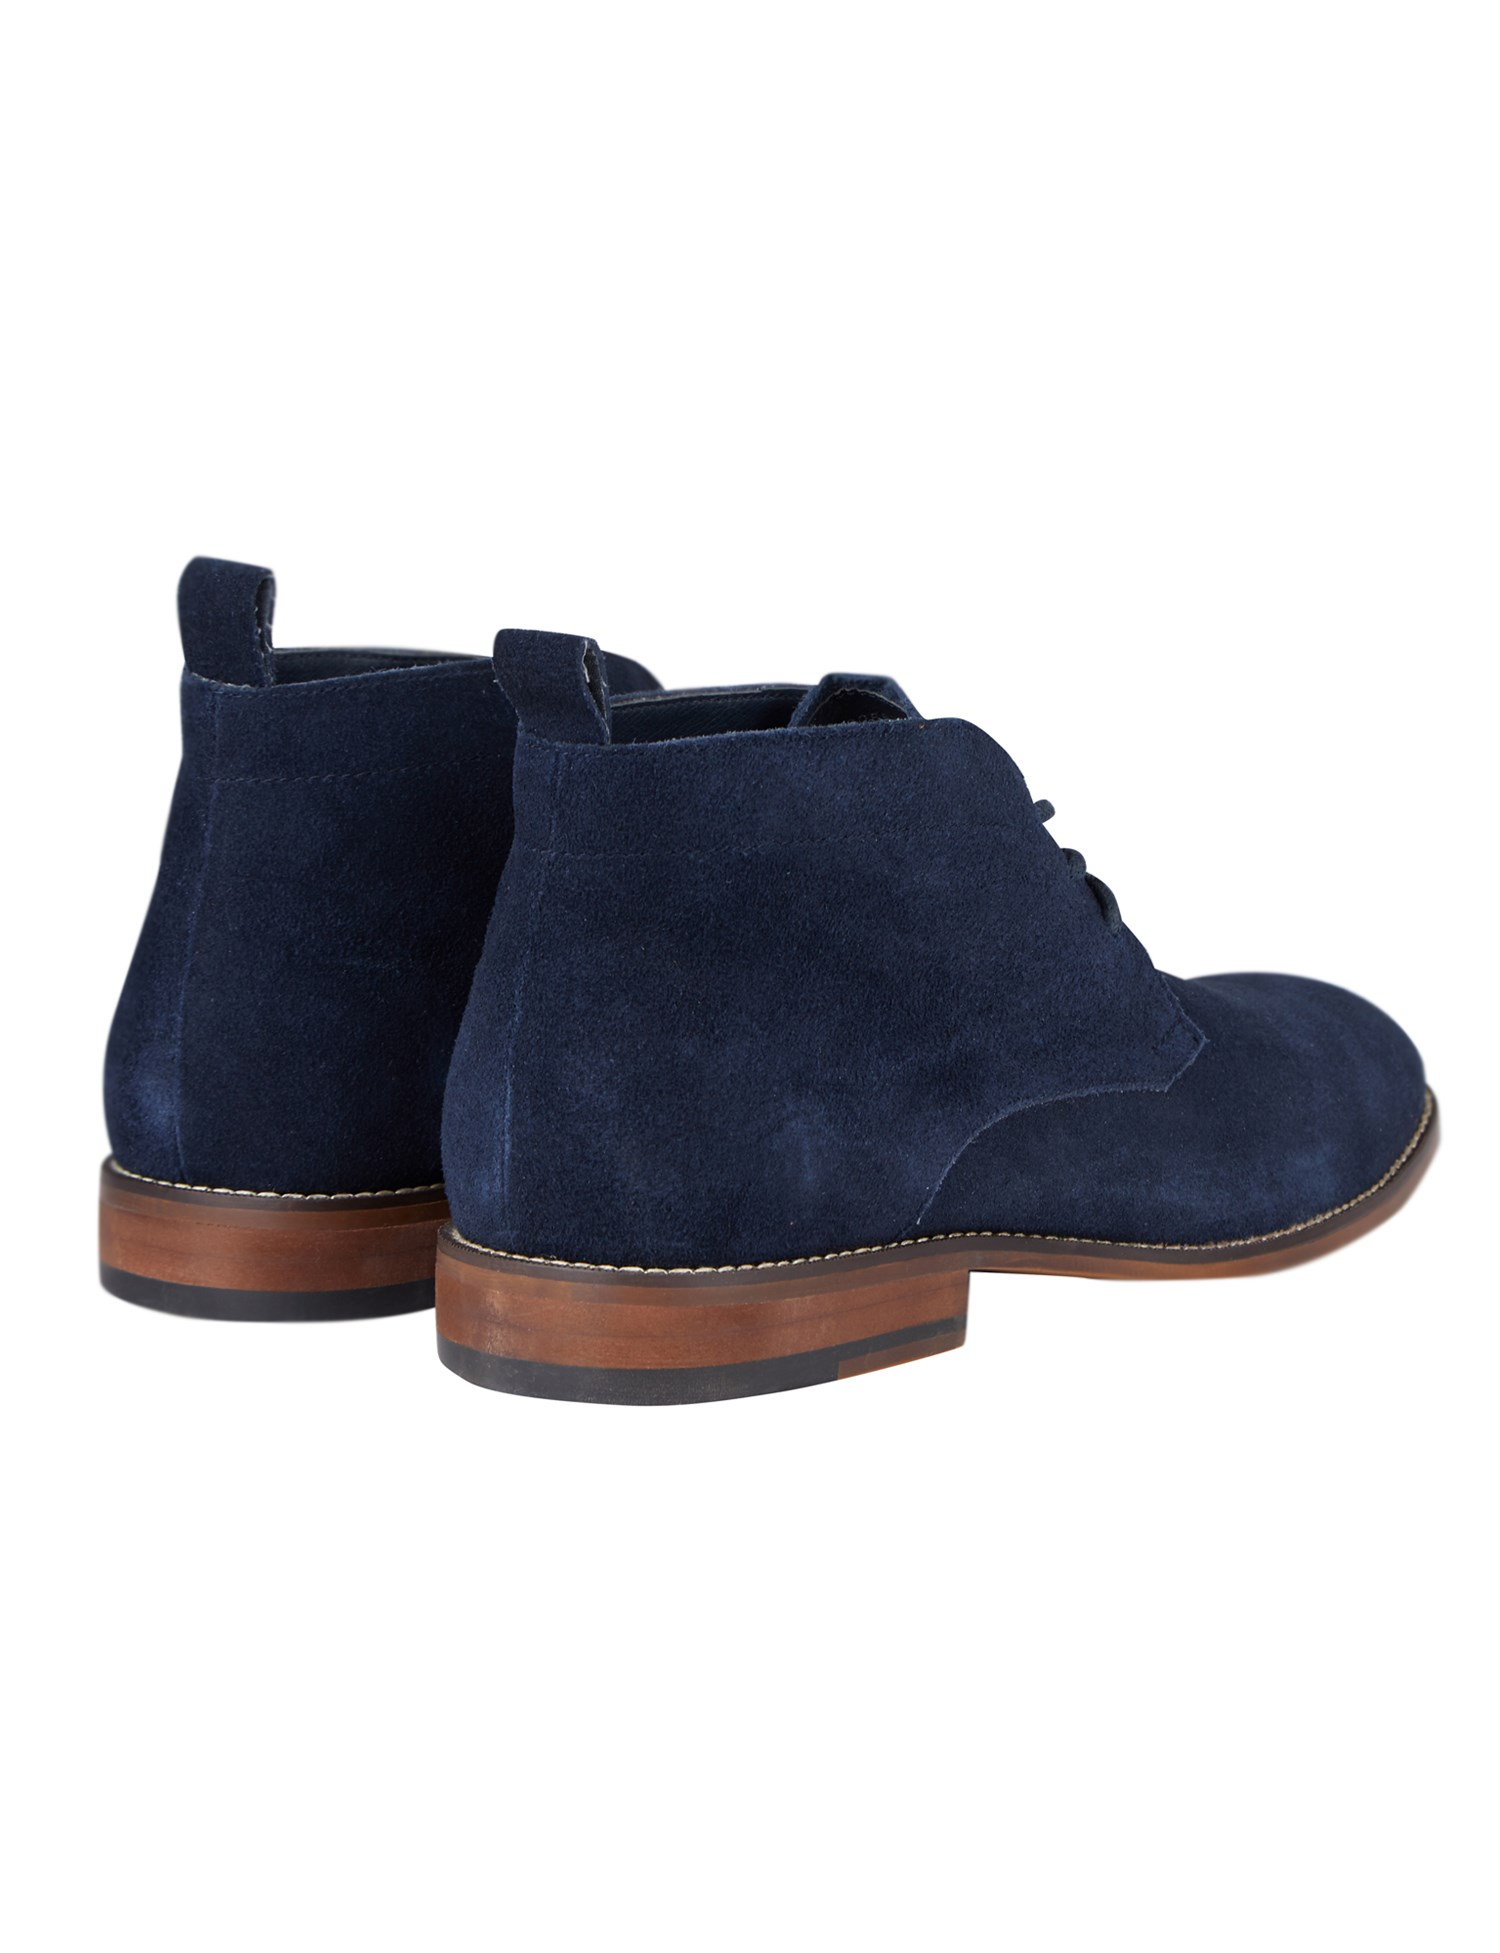 Jeff Banks Boots | Navy Suede Chukka